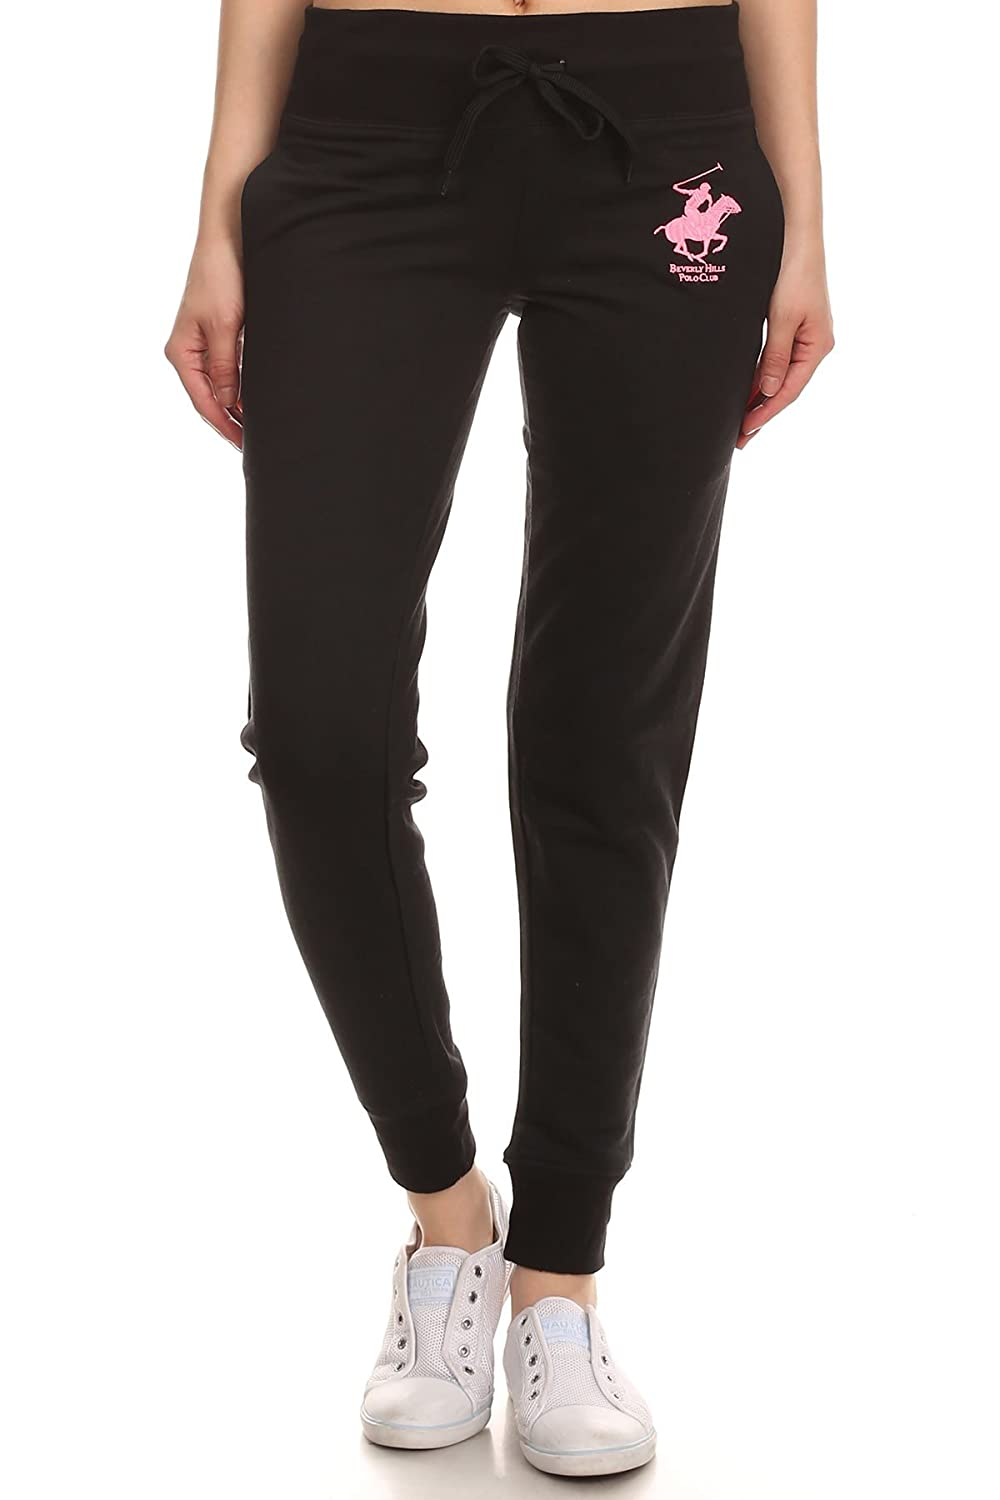 BH920 Beverly Hills Polo Club Womens Workout Sweatpants